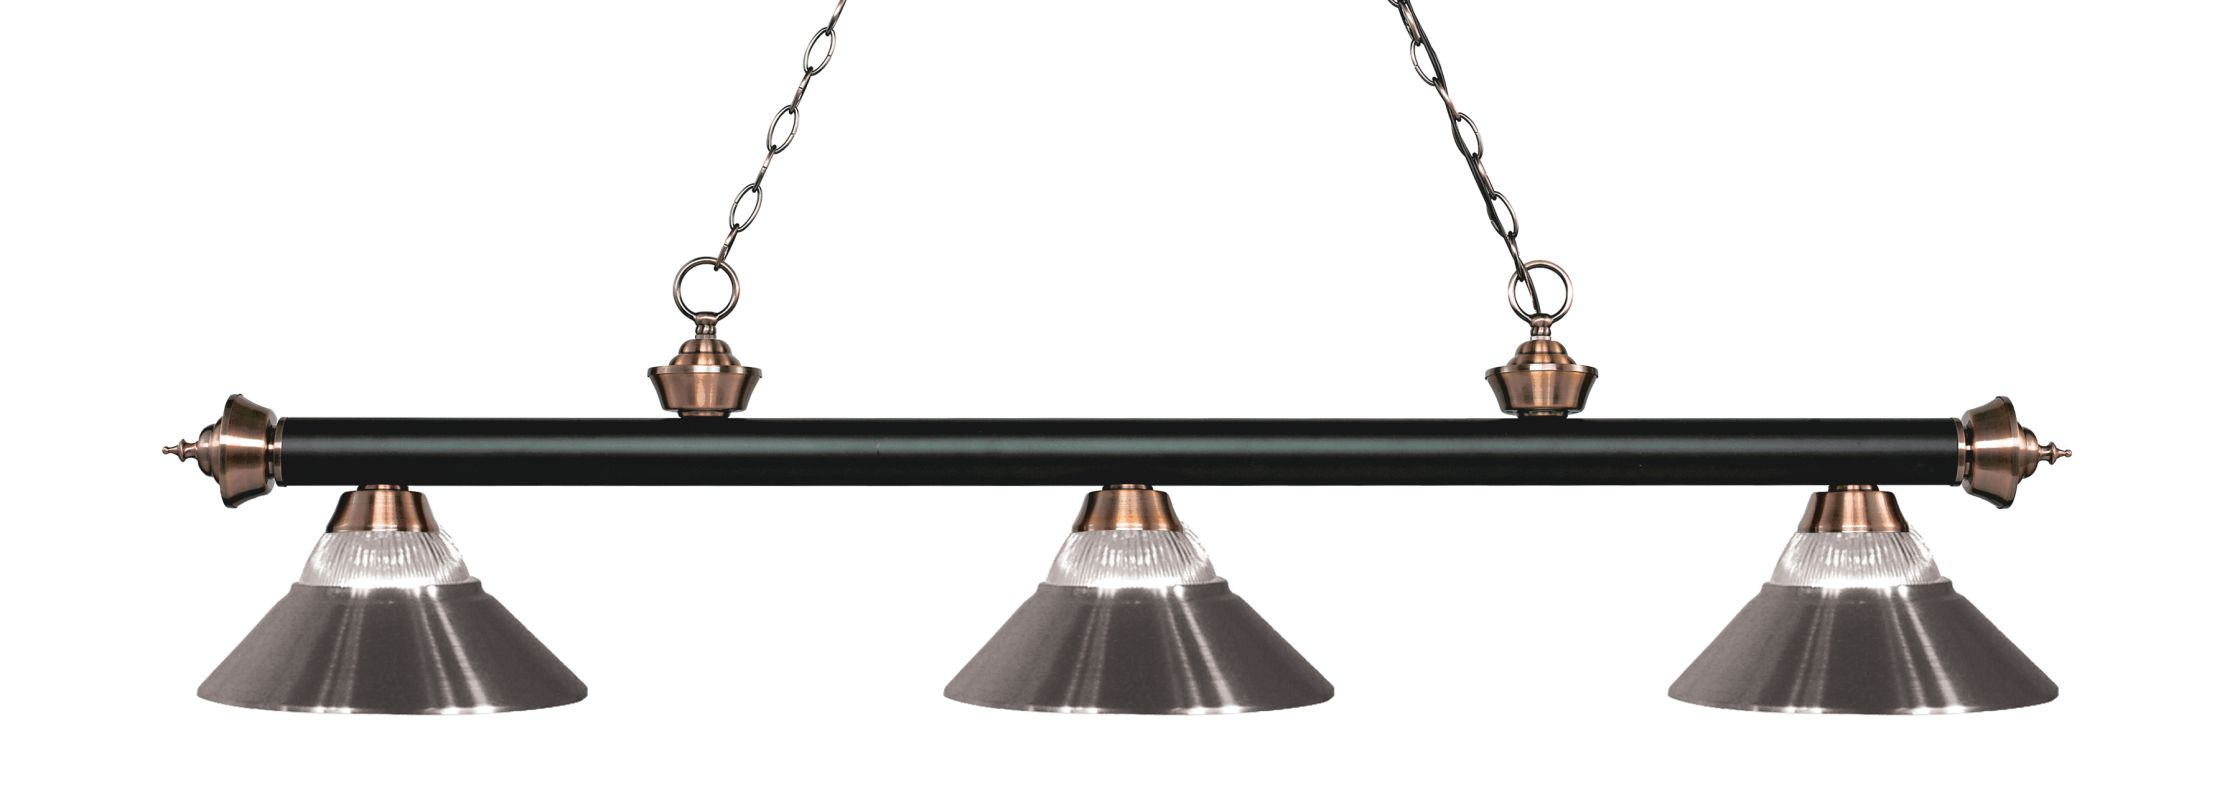 Z-Lite 200-3-RBN Riviera 3 Light Island/Billiard Chandelier with Clear Sale $370.00 ITEM: bci2734560 ID#:200-3MB+AC-RBN UPC: 685659053302 :